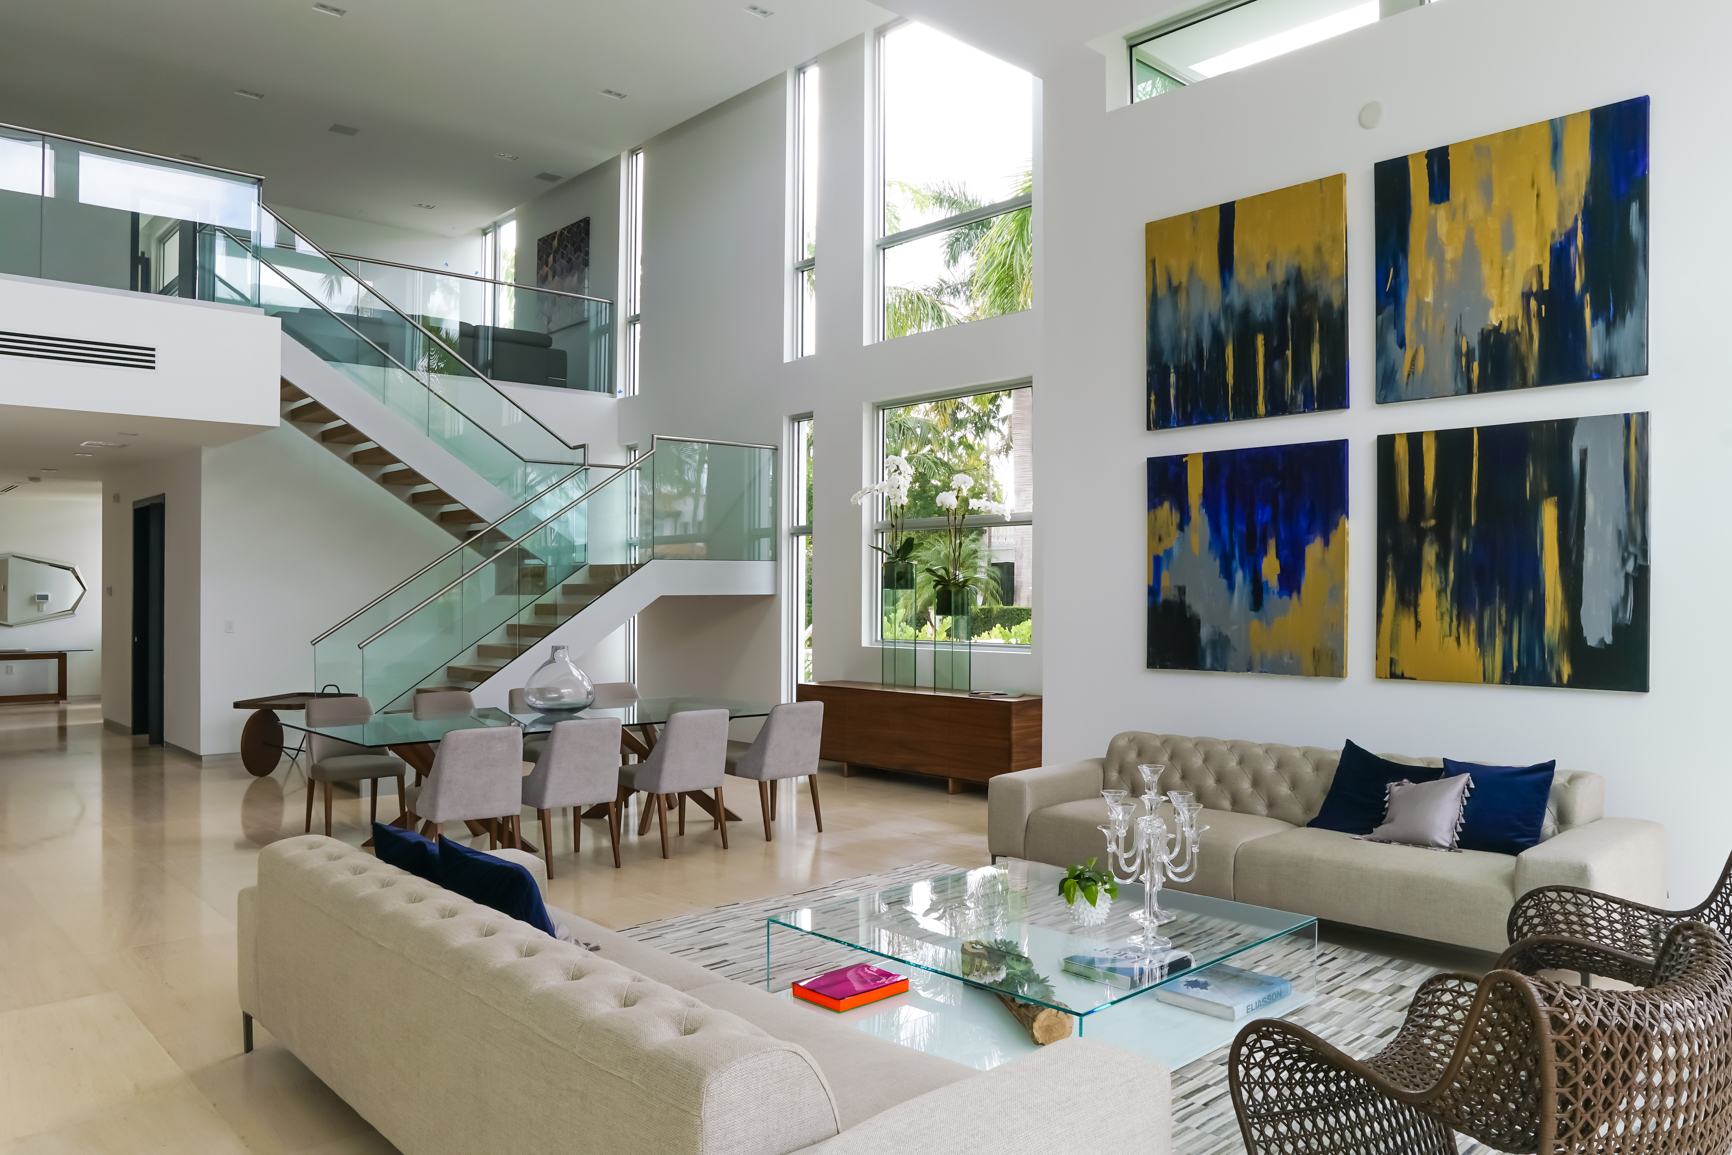 Bal Harbour Tropical Residence High-end Builder Contractor Miami Florida Luxury dining staircase glass railing limestone marble table ceiling door